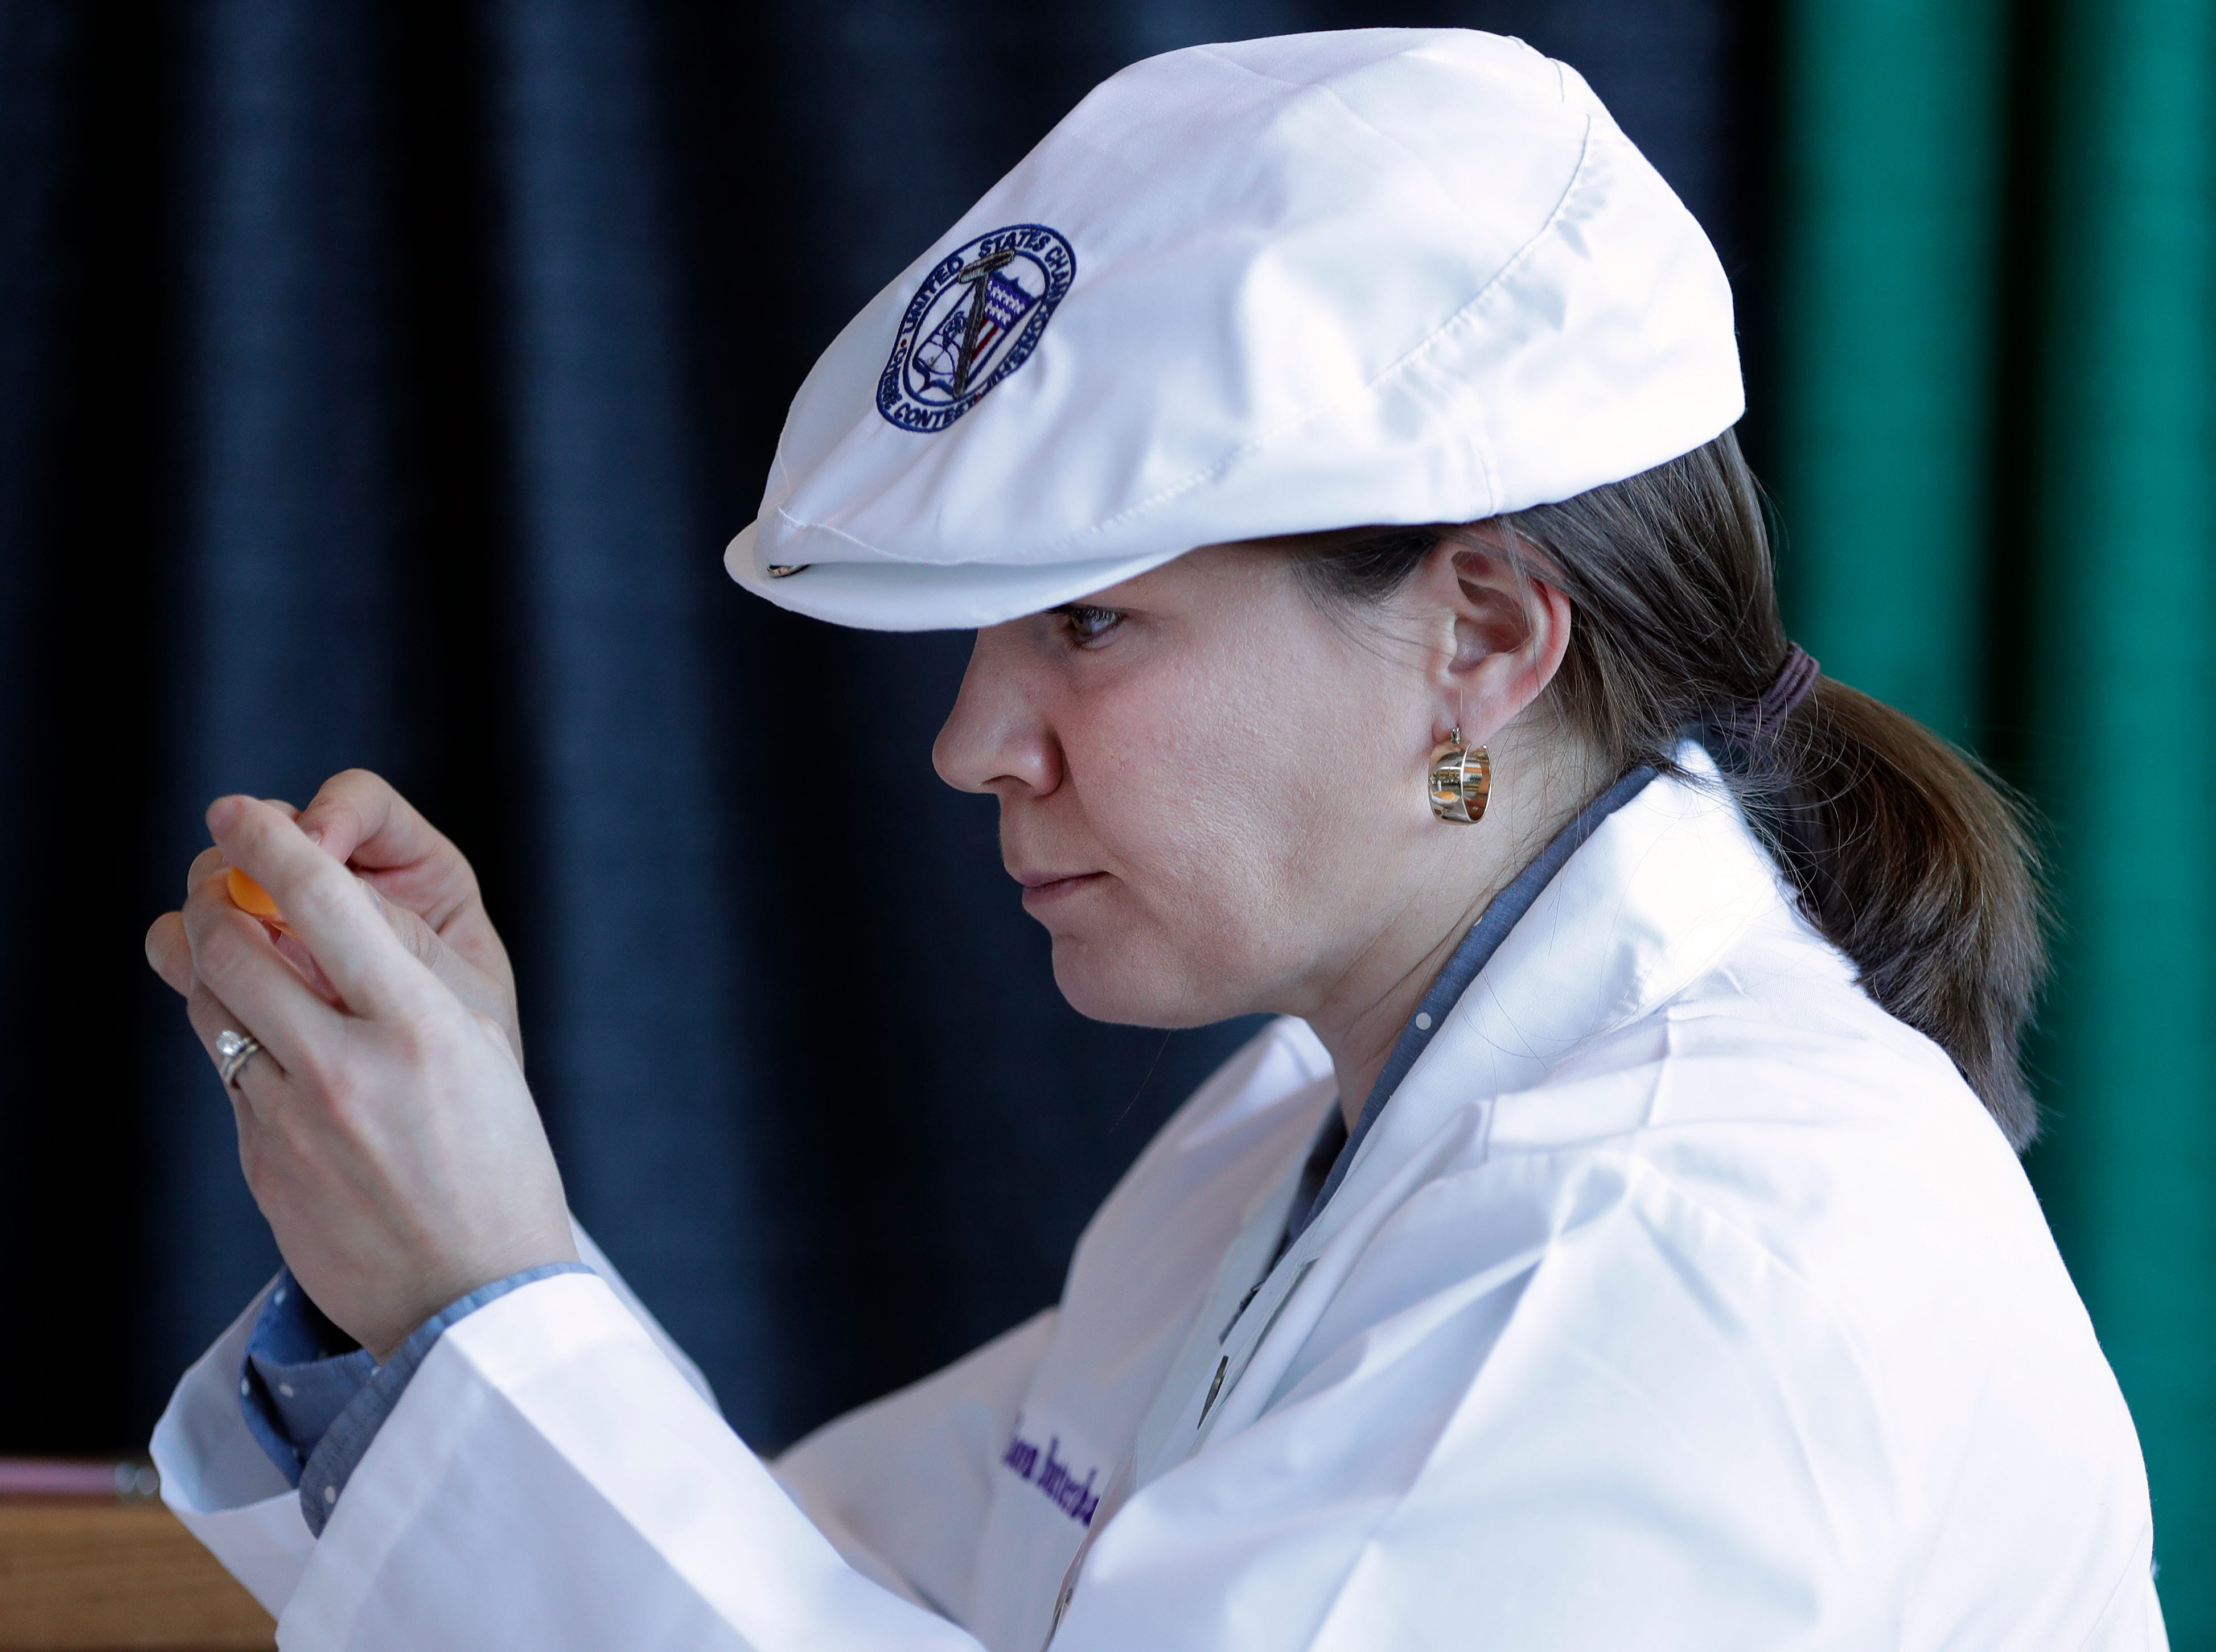 Allison Butterbaugh of Clemson University in South Carolina examines a piece of cheese at U.S. Championship Cheese Contest on March 5, 2019 at Lambeau Field in Green Bay, Wis.